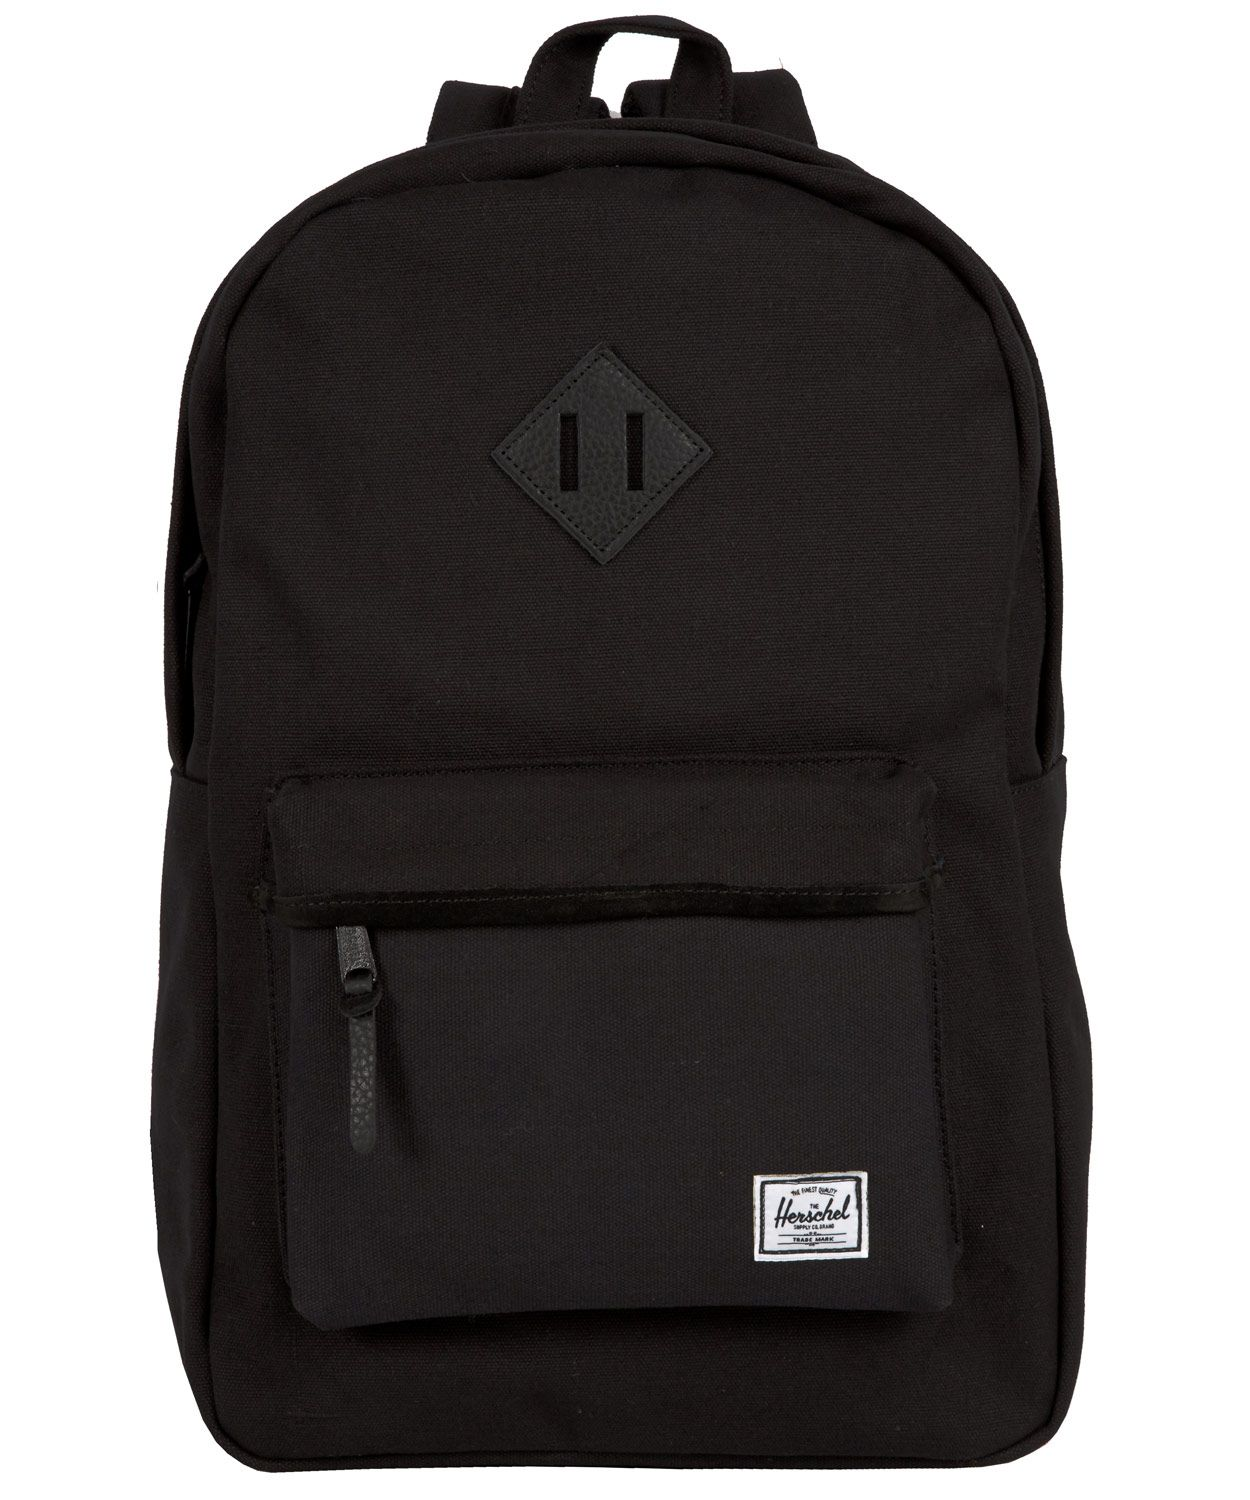 70c49923bfd All black everything. Herschel's Heritage Canvas Backpack online at ...